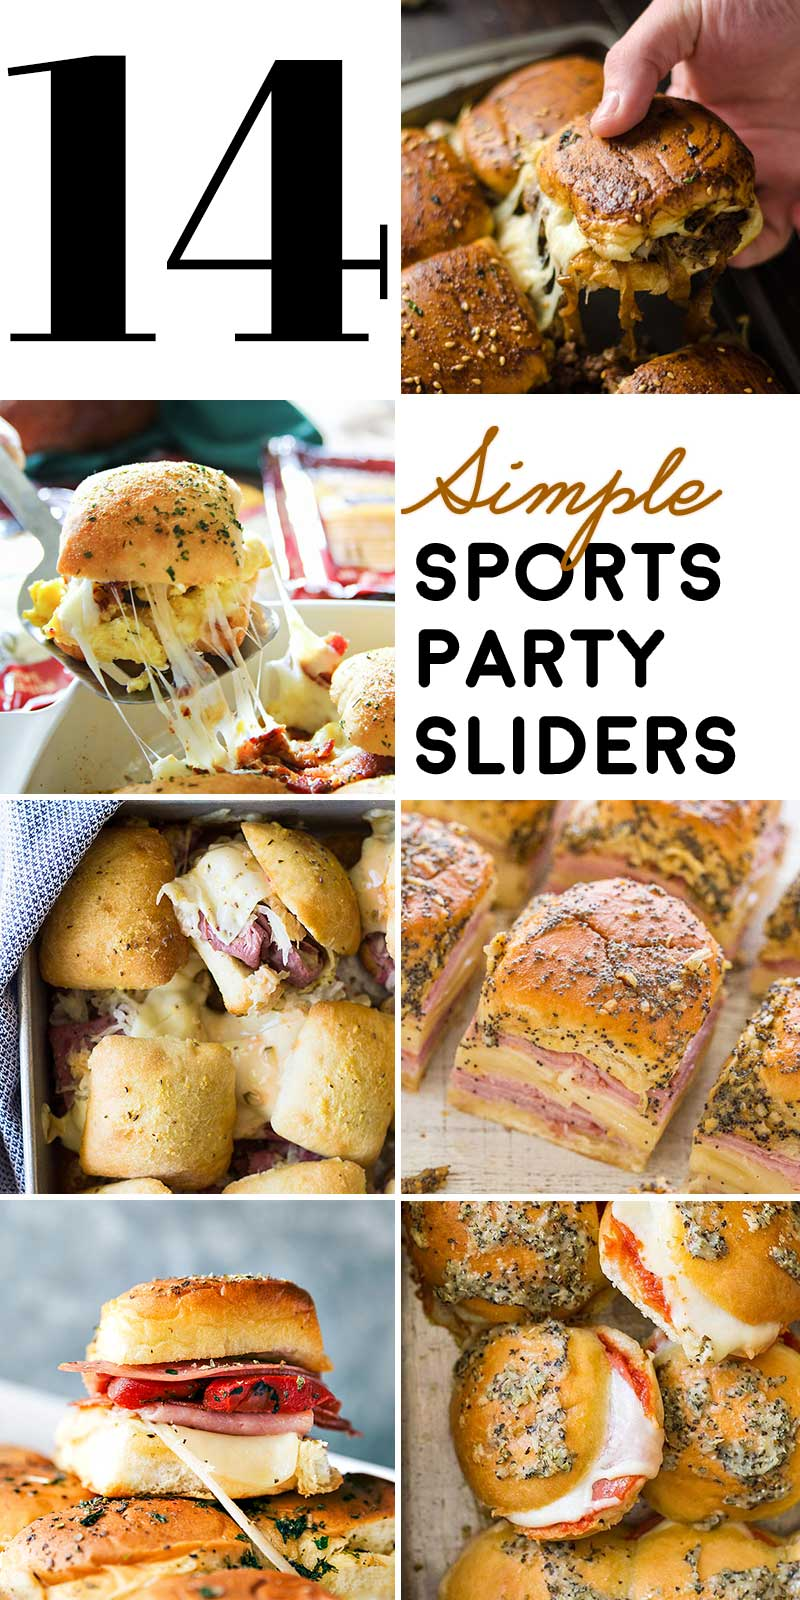 14 Simple Sports Party Sliders! If you're looking for a one-pan way to please the crowd at your next sports party, this list of simple slider recipes is a total win!   HomemadeHooplah.com